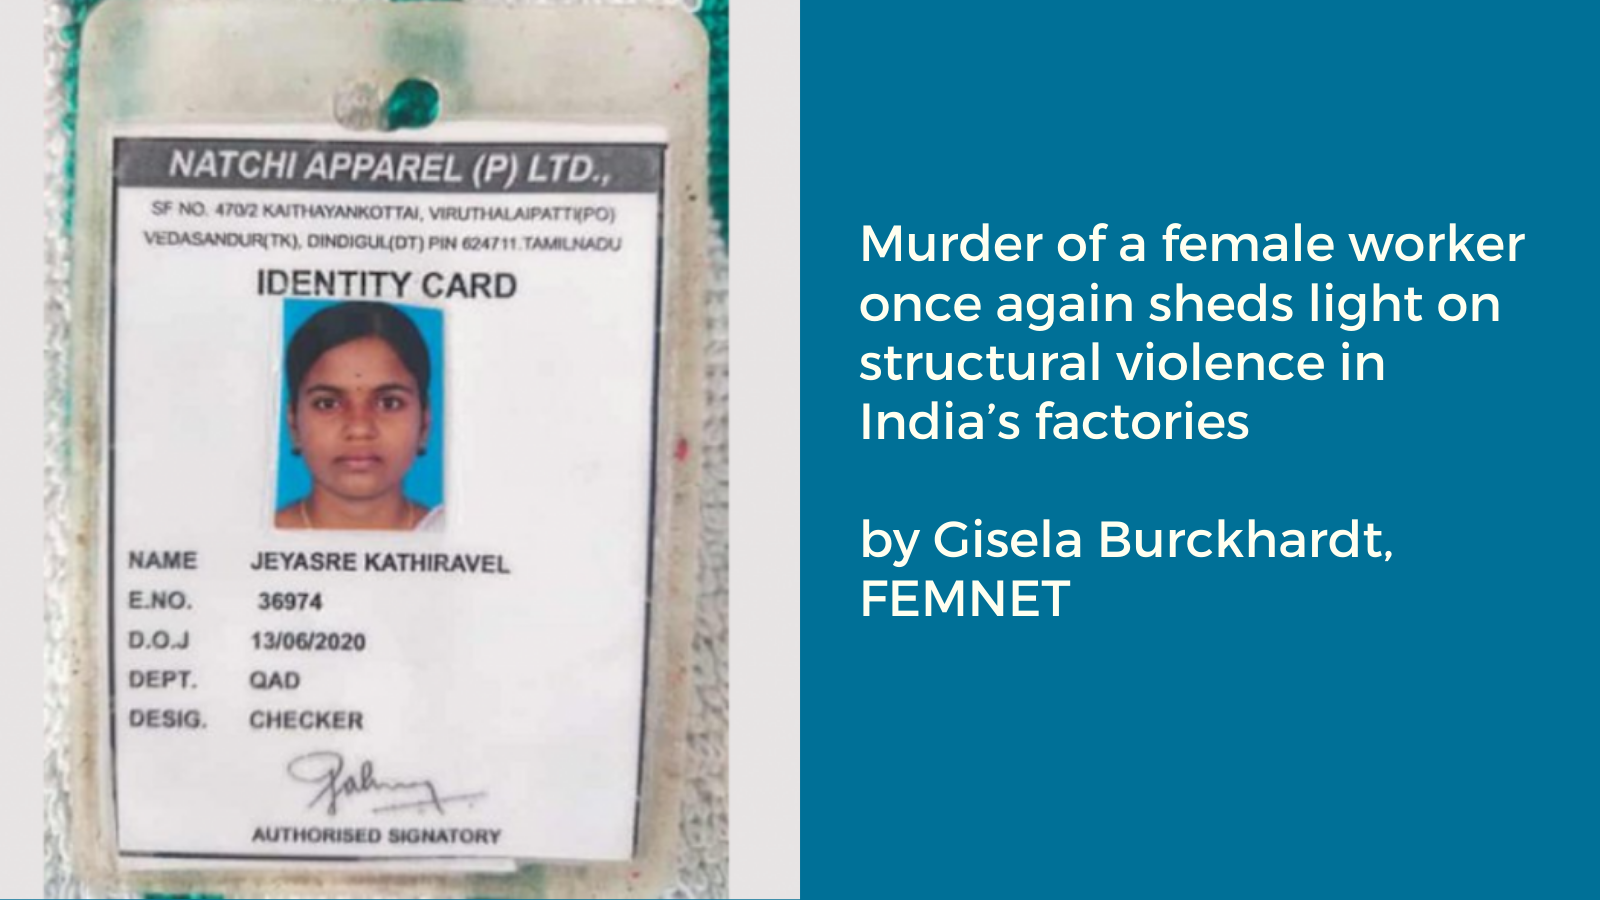 Murder of a Female Worker Once Again Sheds Light on Structural Violence in India's Factories